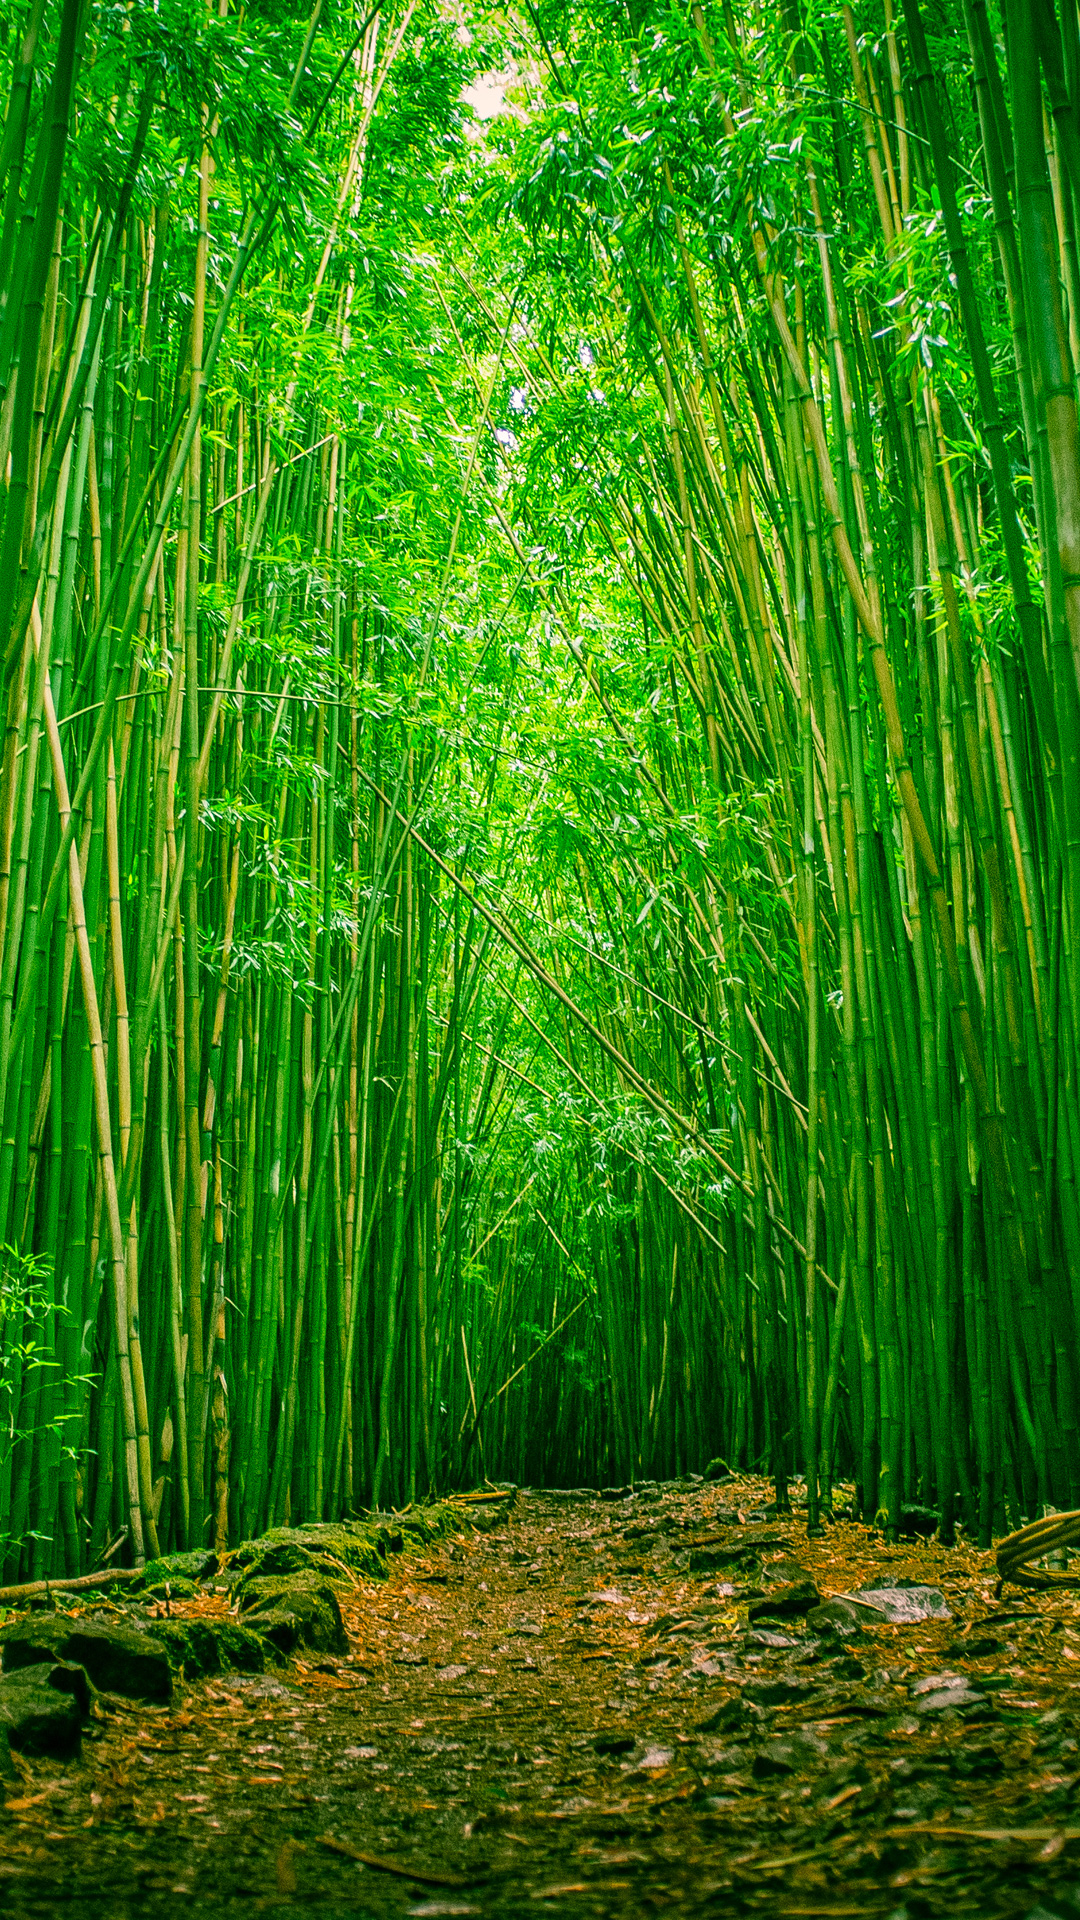 Bamboo Forest Iphone Wallpaper Hd